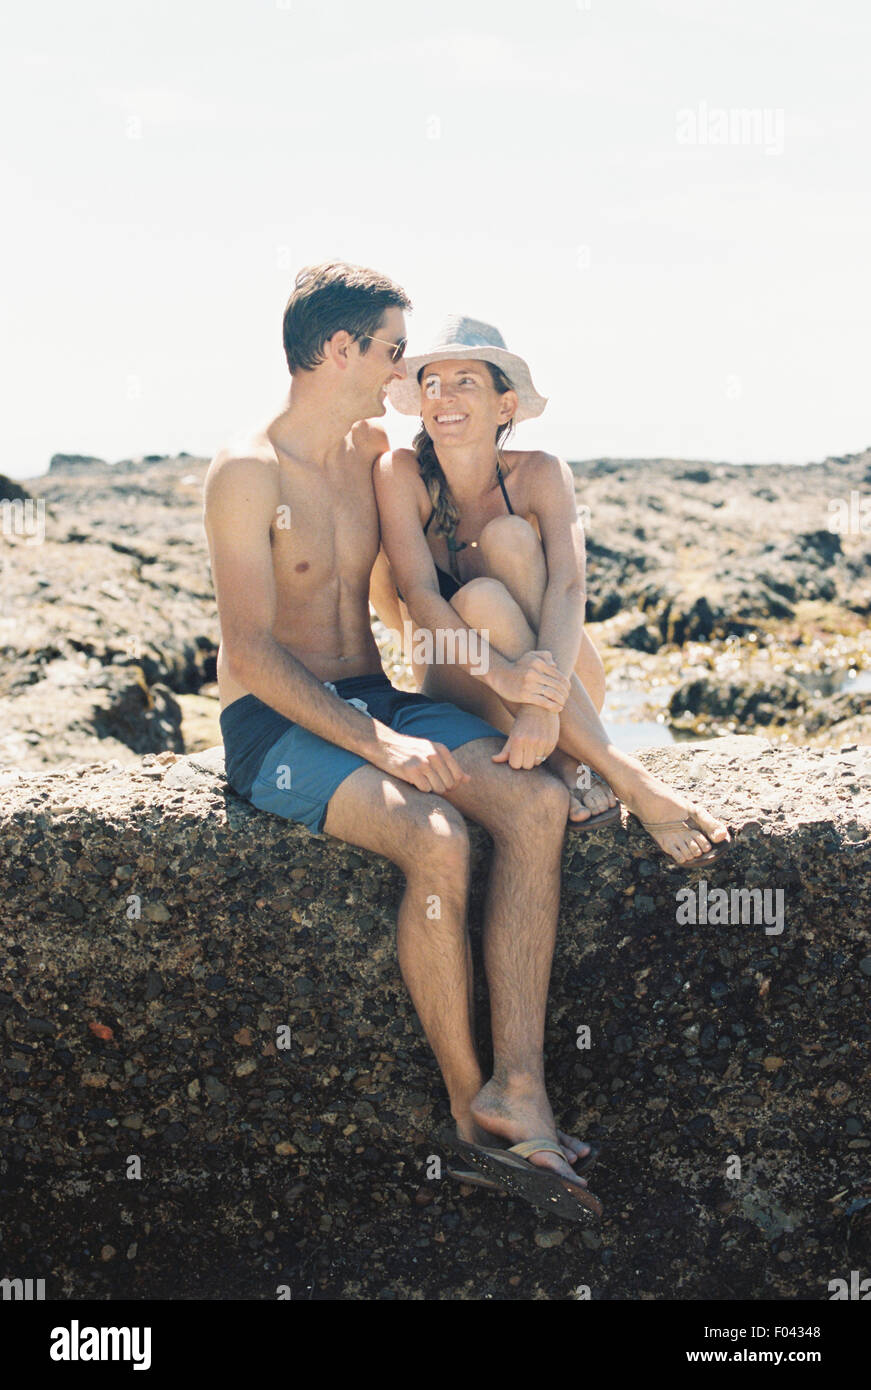 A man and woman, a couple sitting on the beach looking lovingly at each other - Stock Image